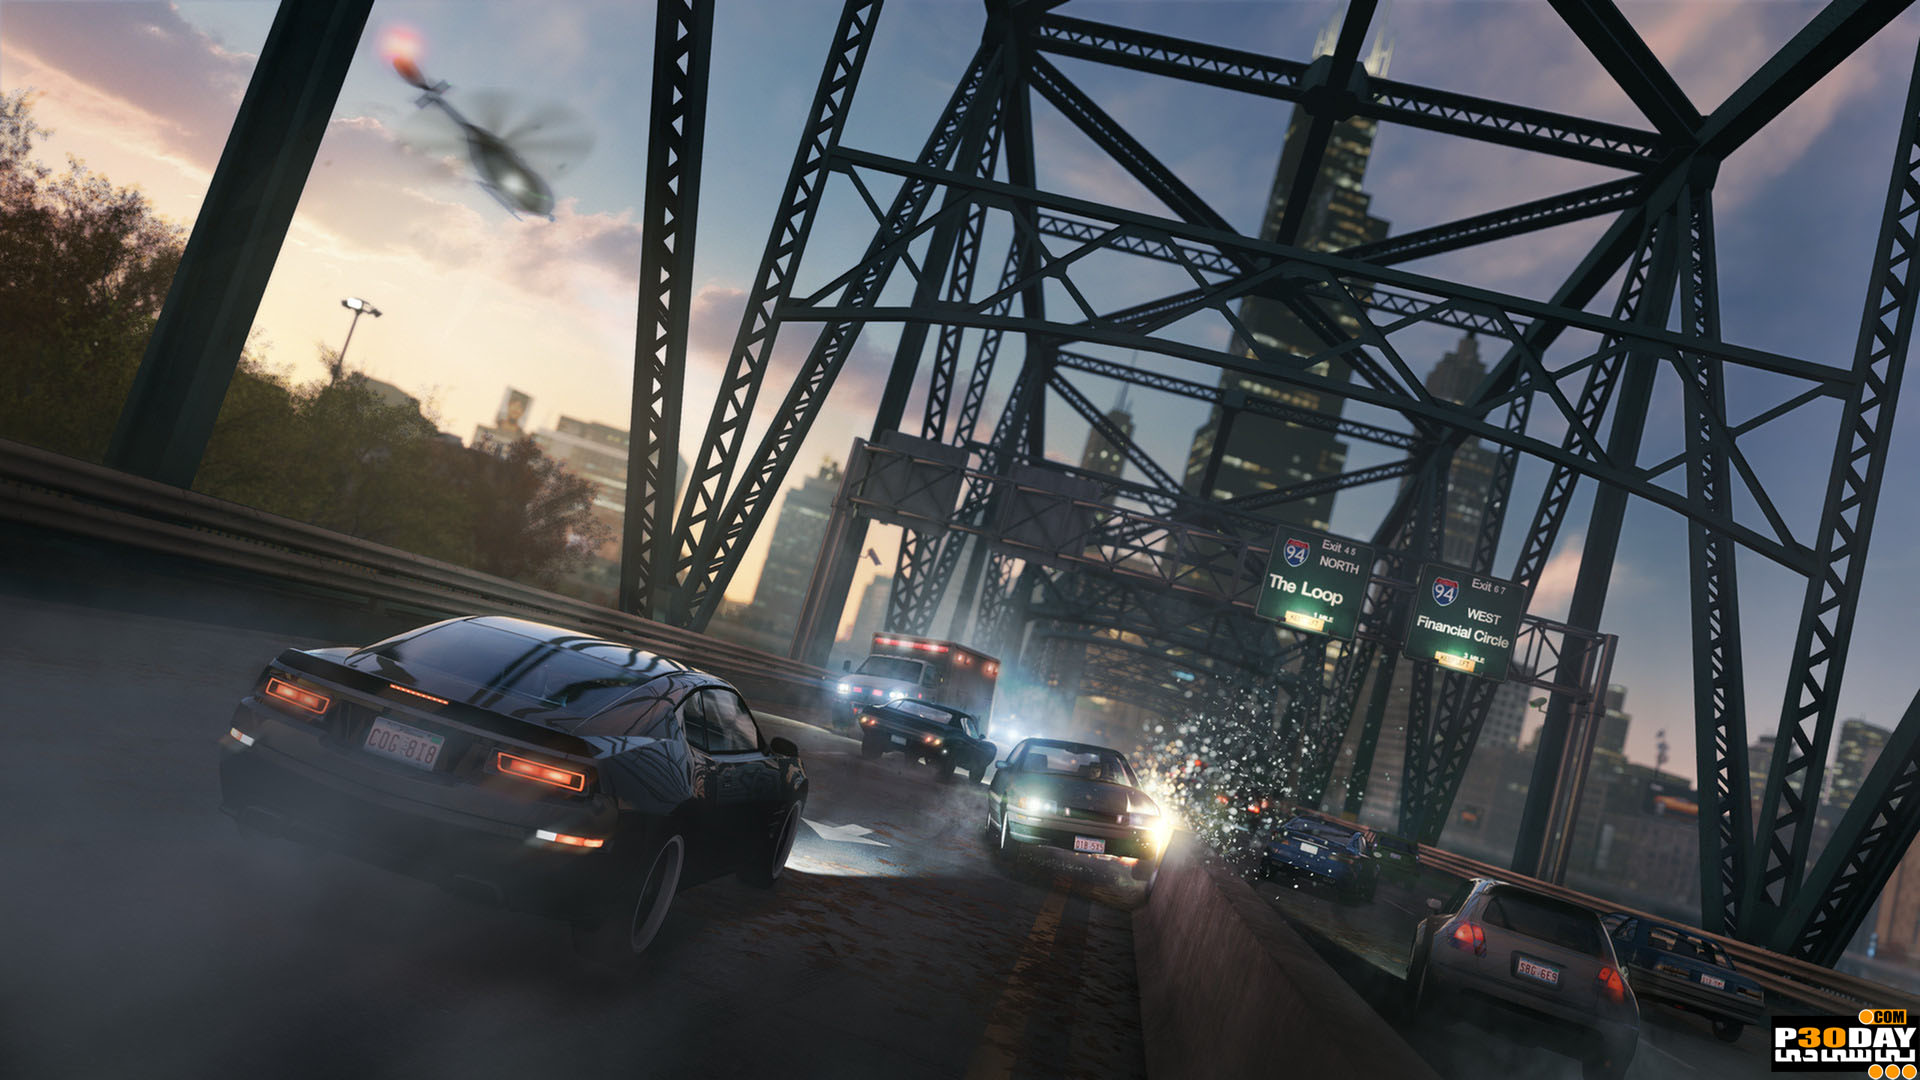 dlc watch dogs bad blood for pc a2z p30 download full softwares, games